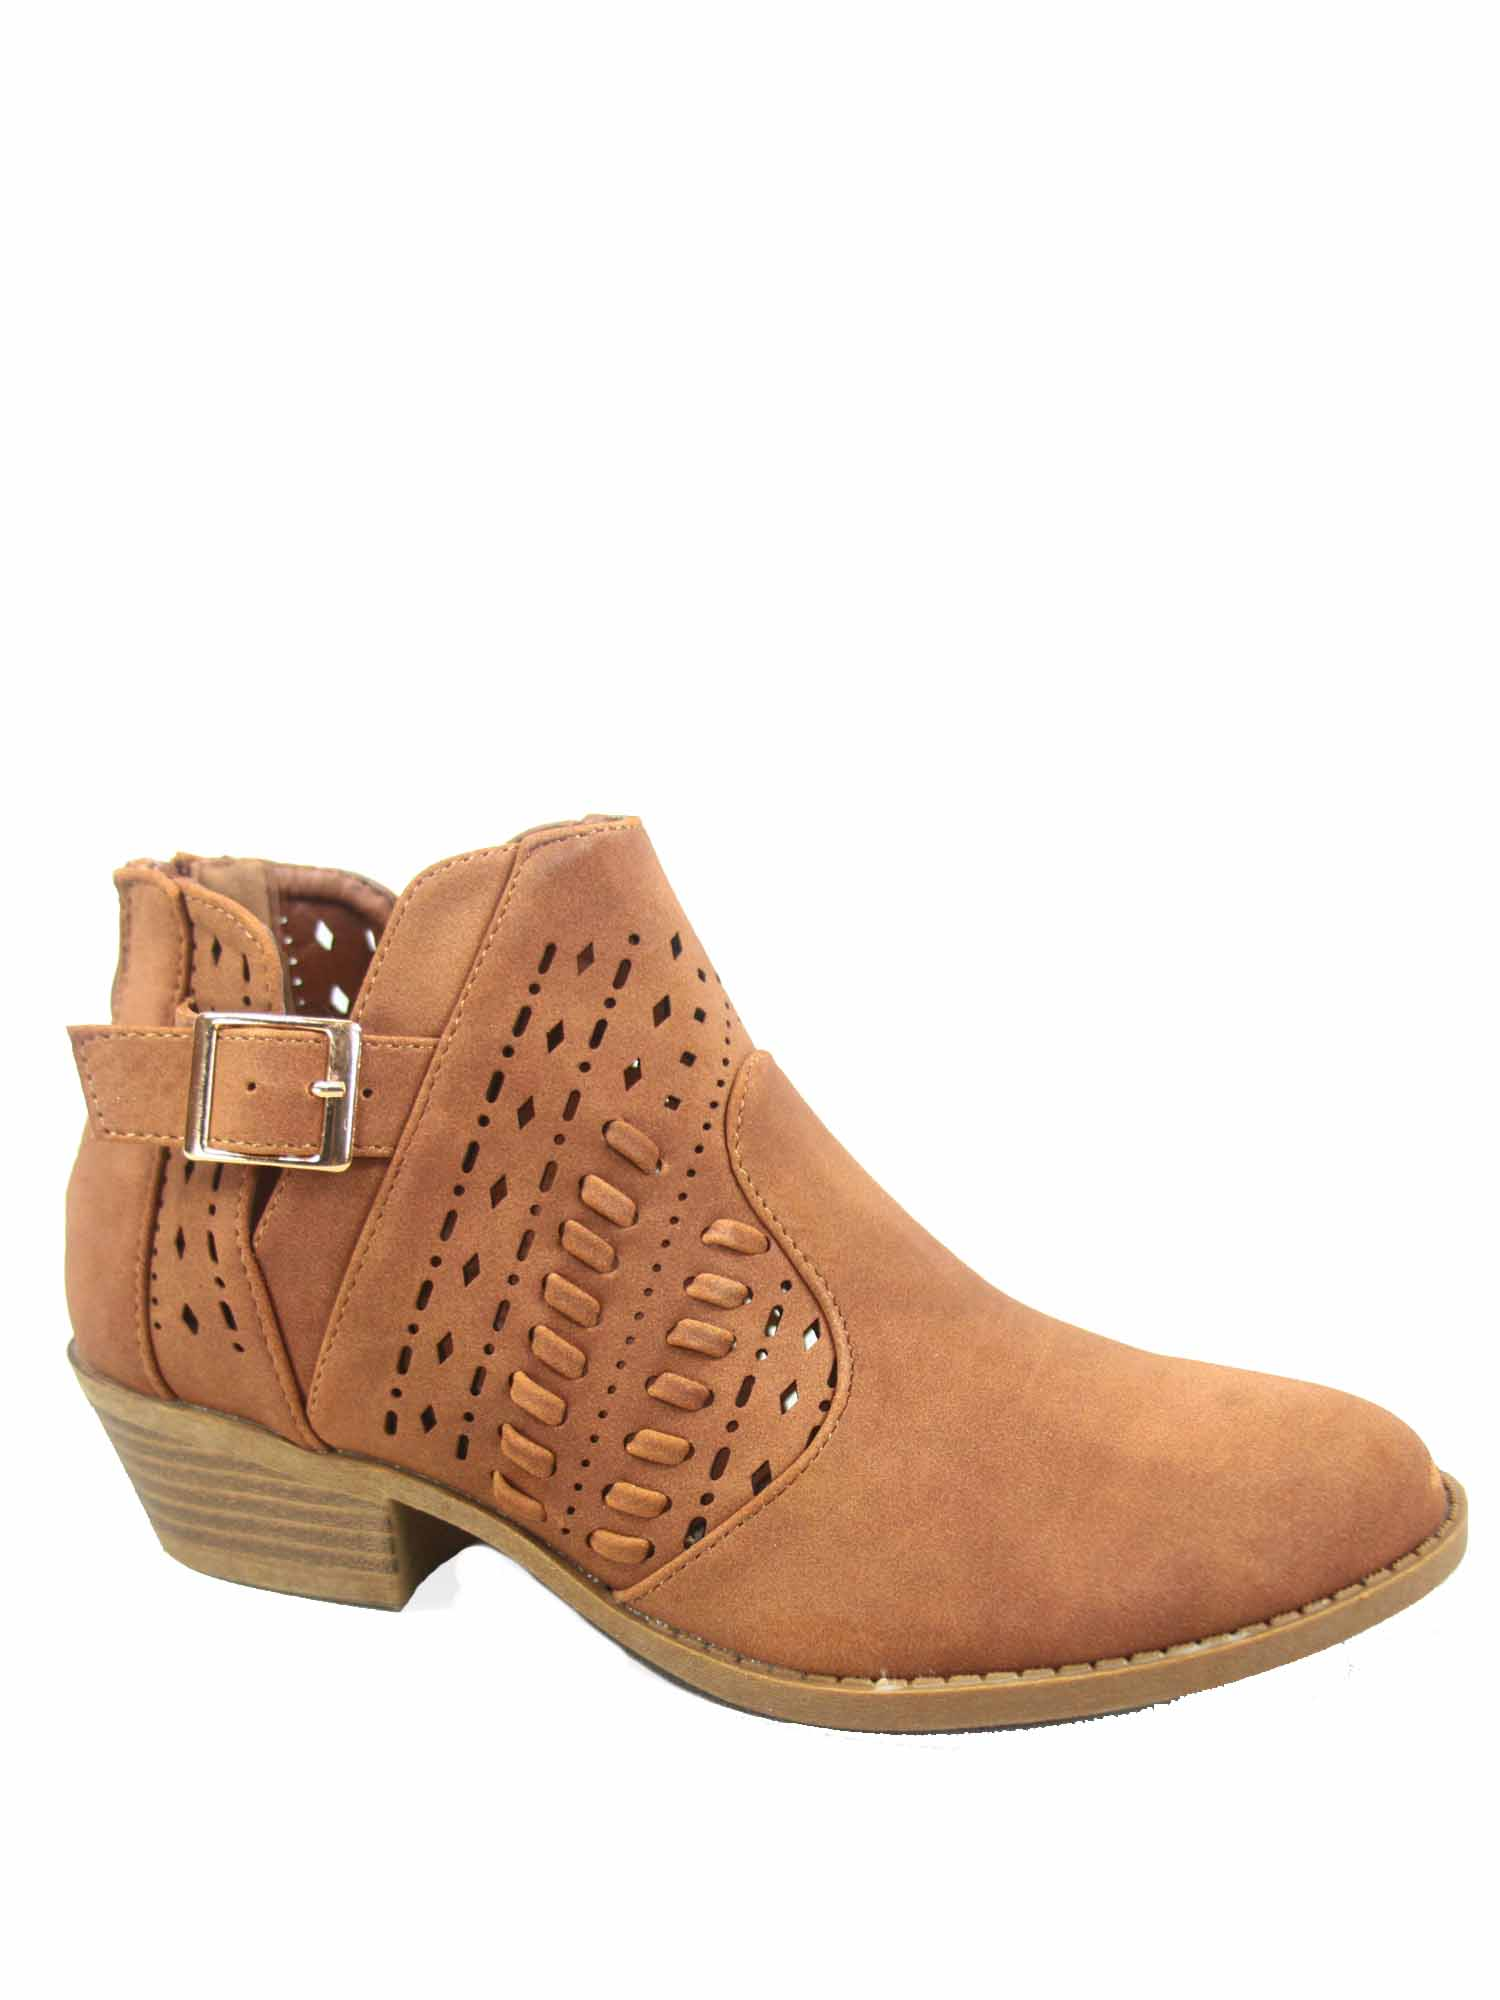 Women's Round Toe Zipper Buckle Perforated Faux Leather Low Heel Ankle Booties